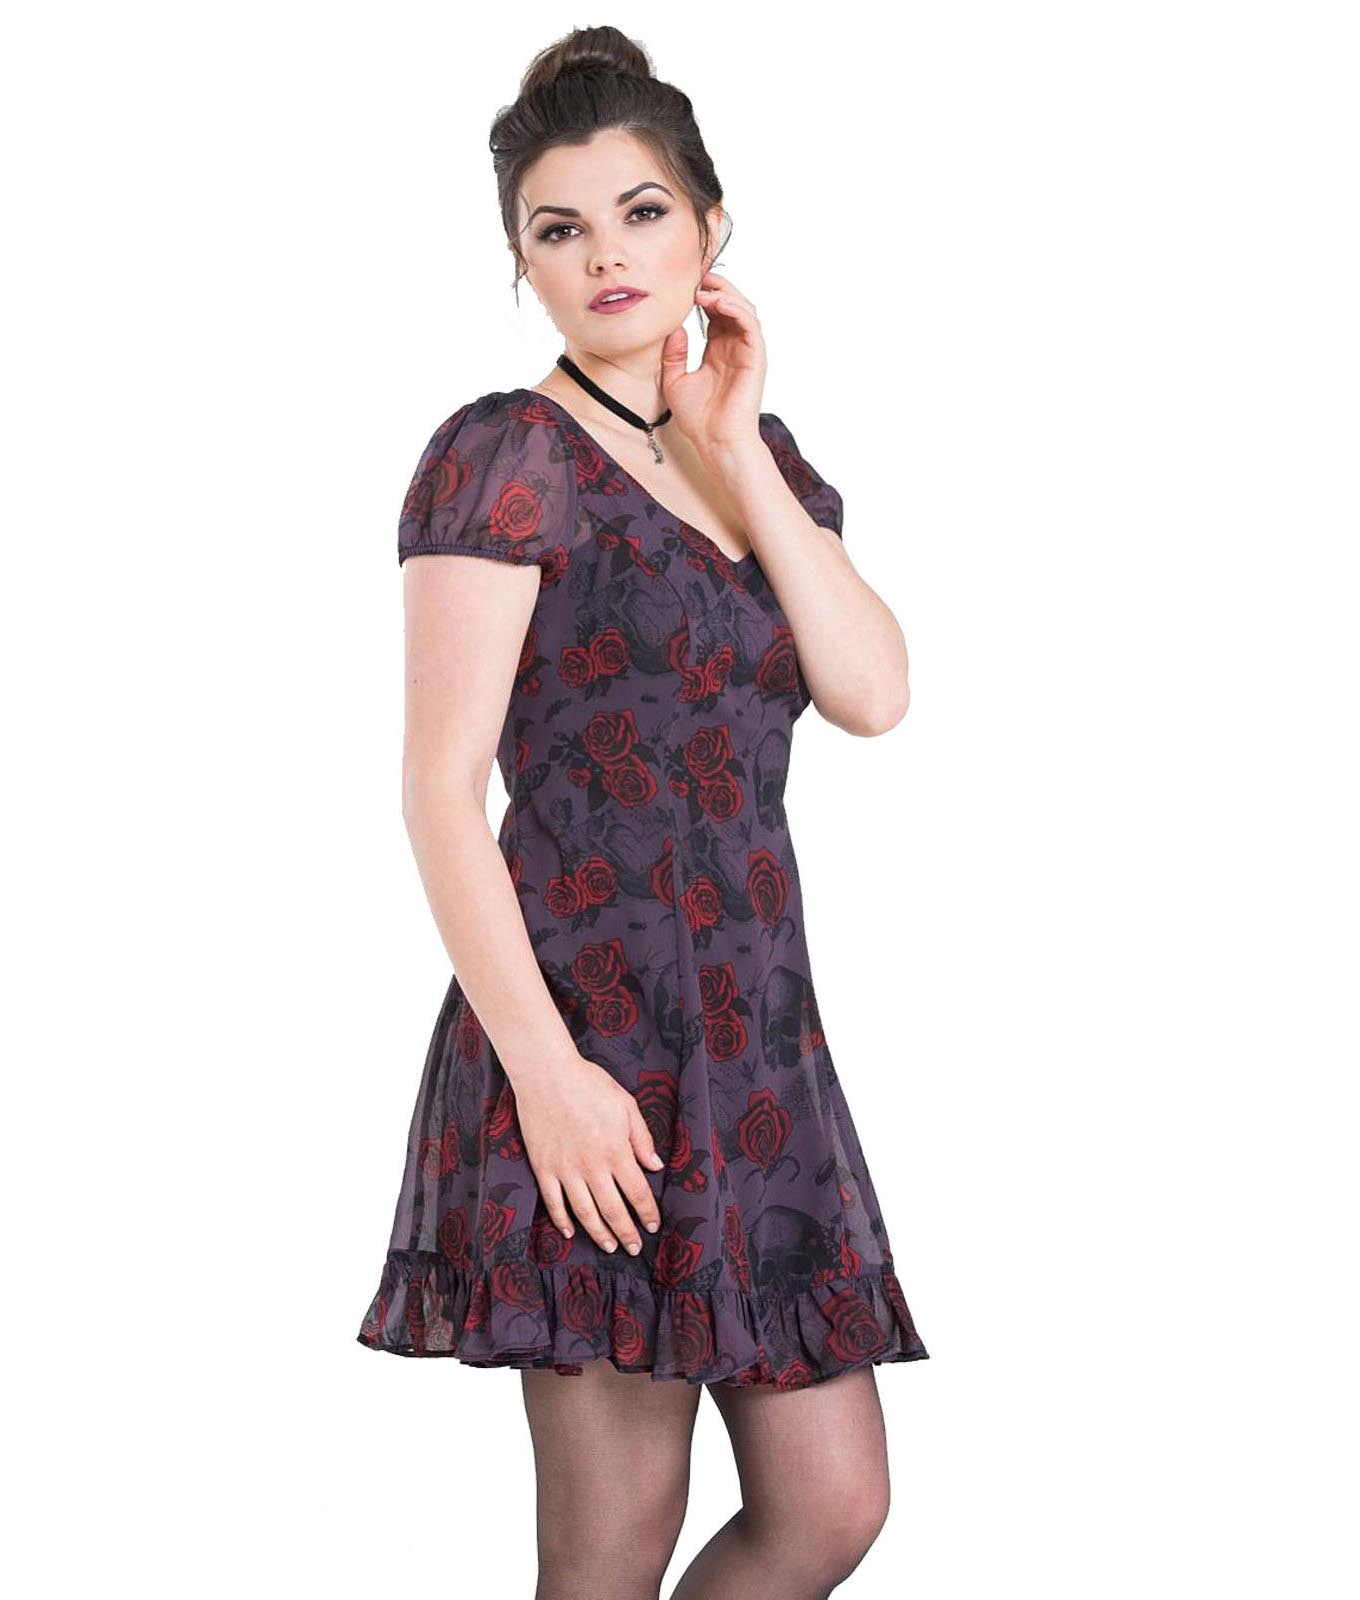 Hell-Bunny-Goth-Floaty-Mini-Dress-BUGS-amp-ROSES-Skulls-Butterfly-Purple-All-Sizes thumbnail 27